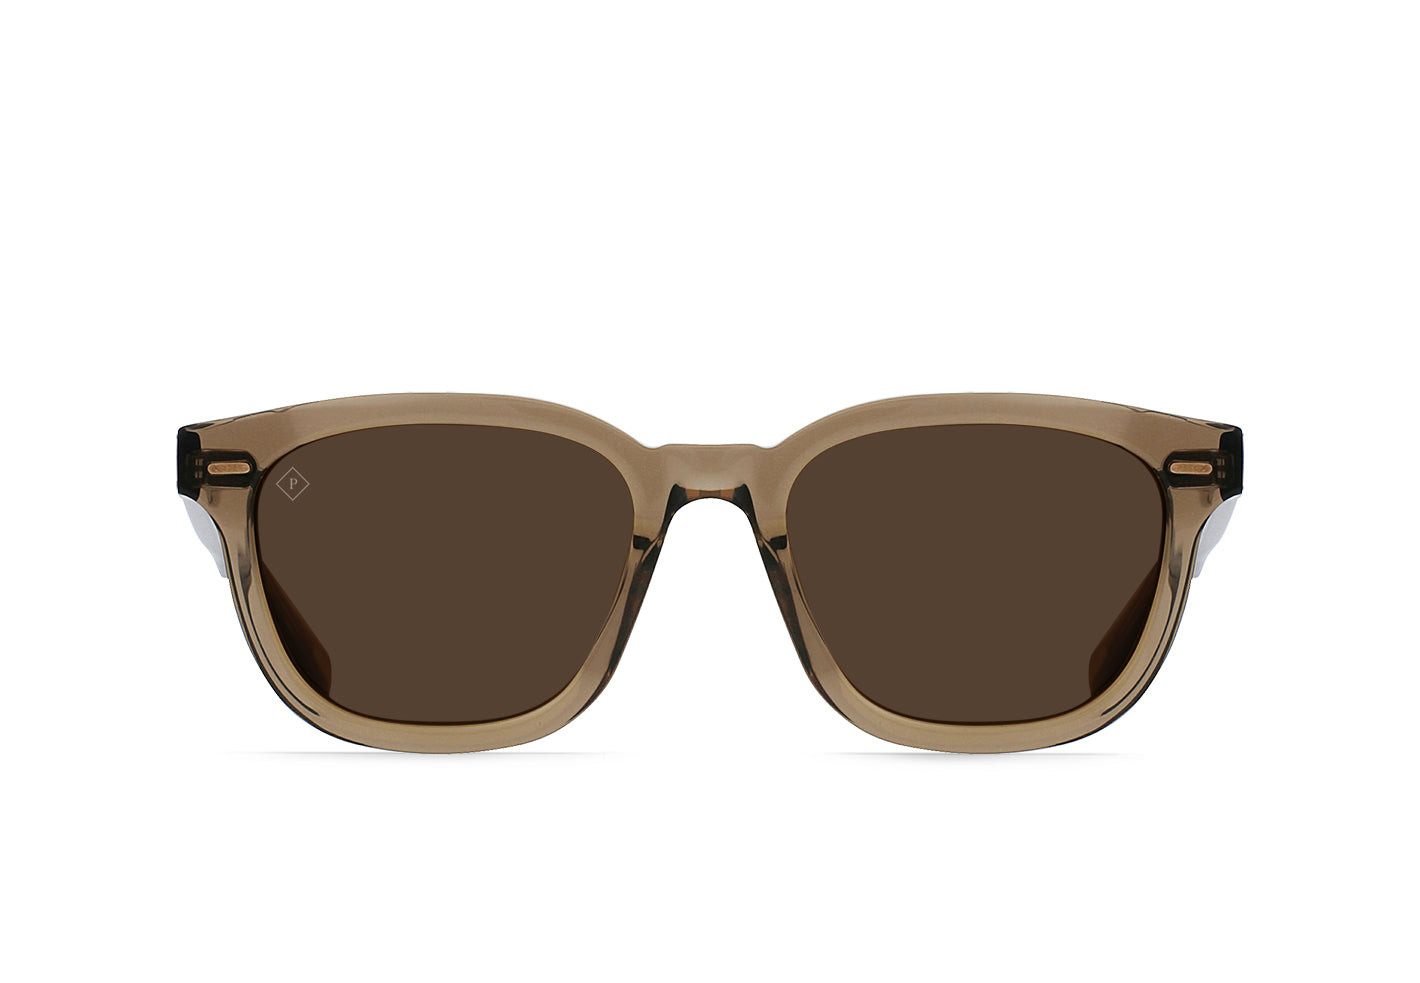 Ghost / Vibrant Brown Polarized